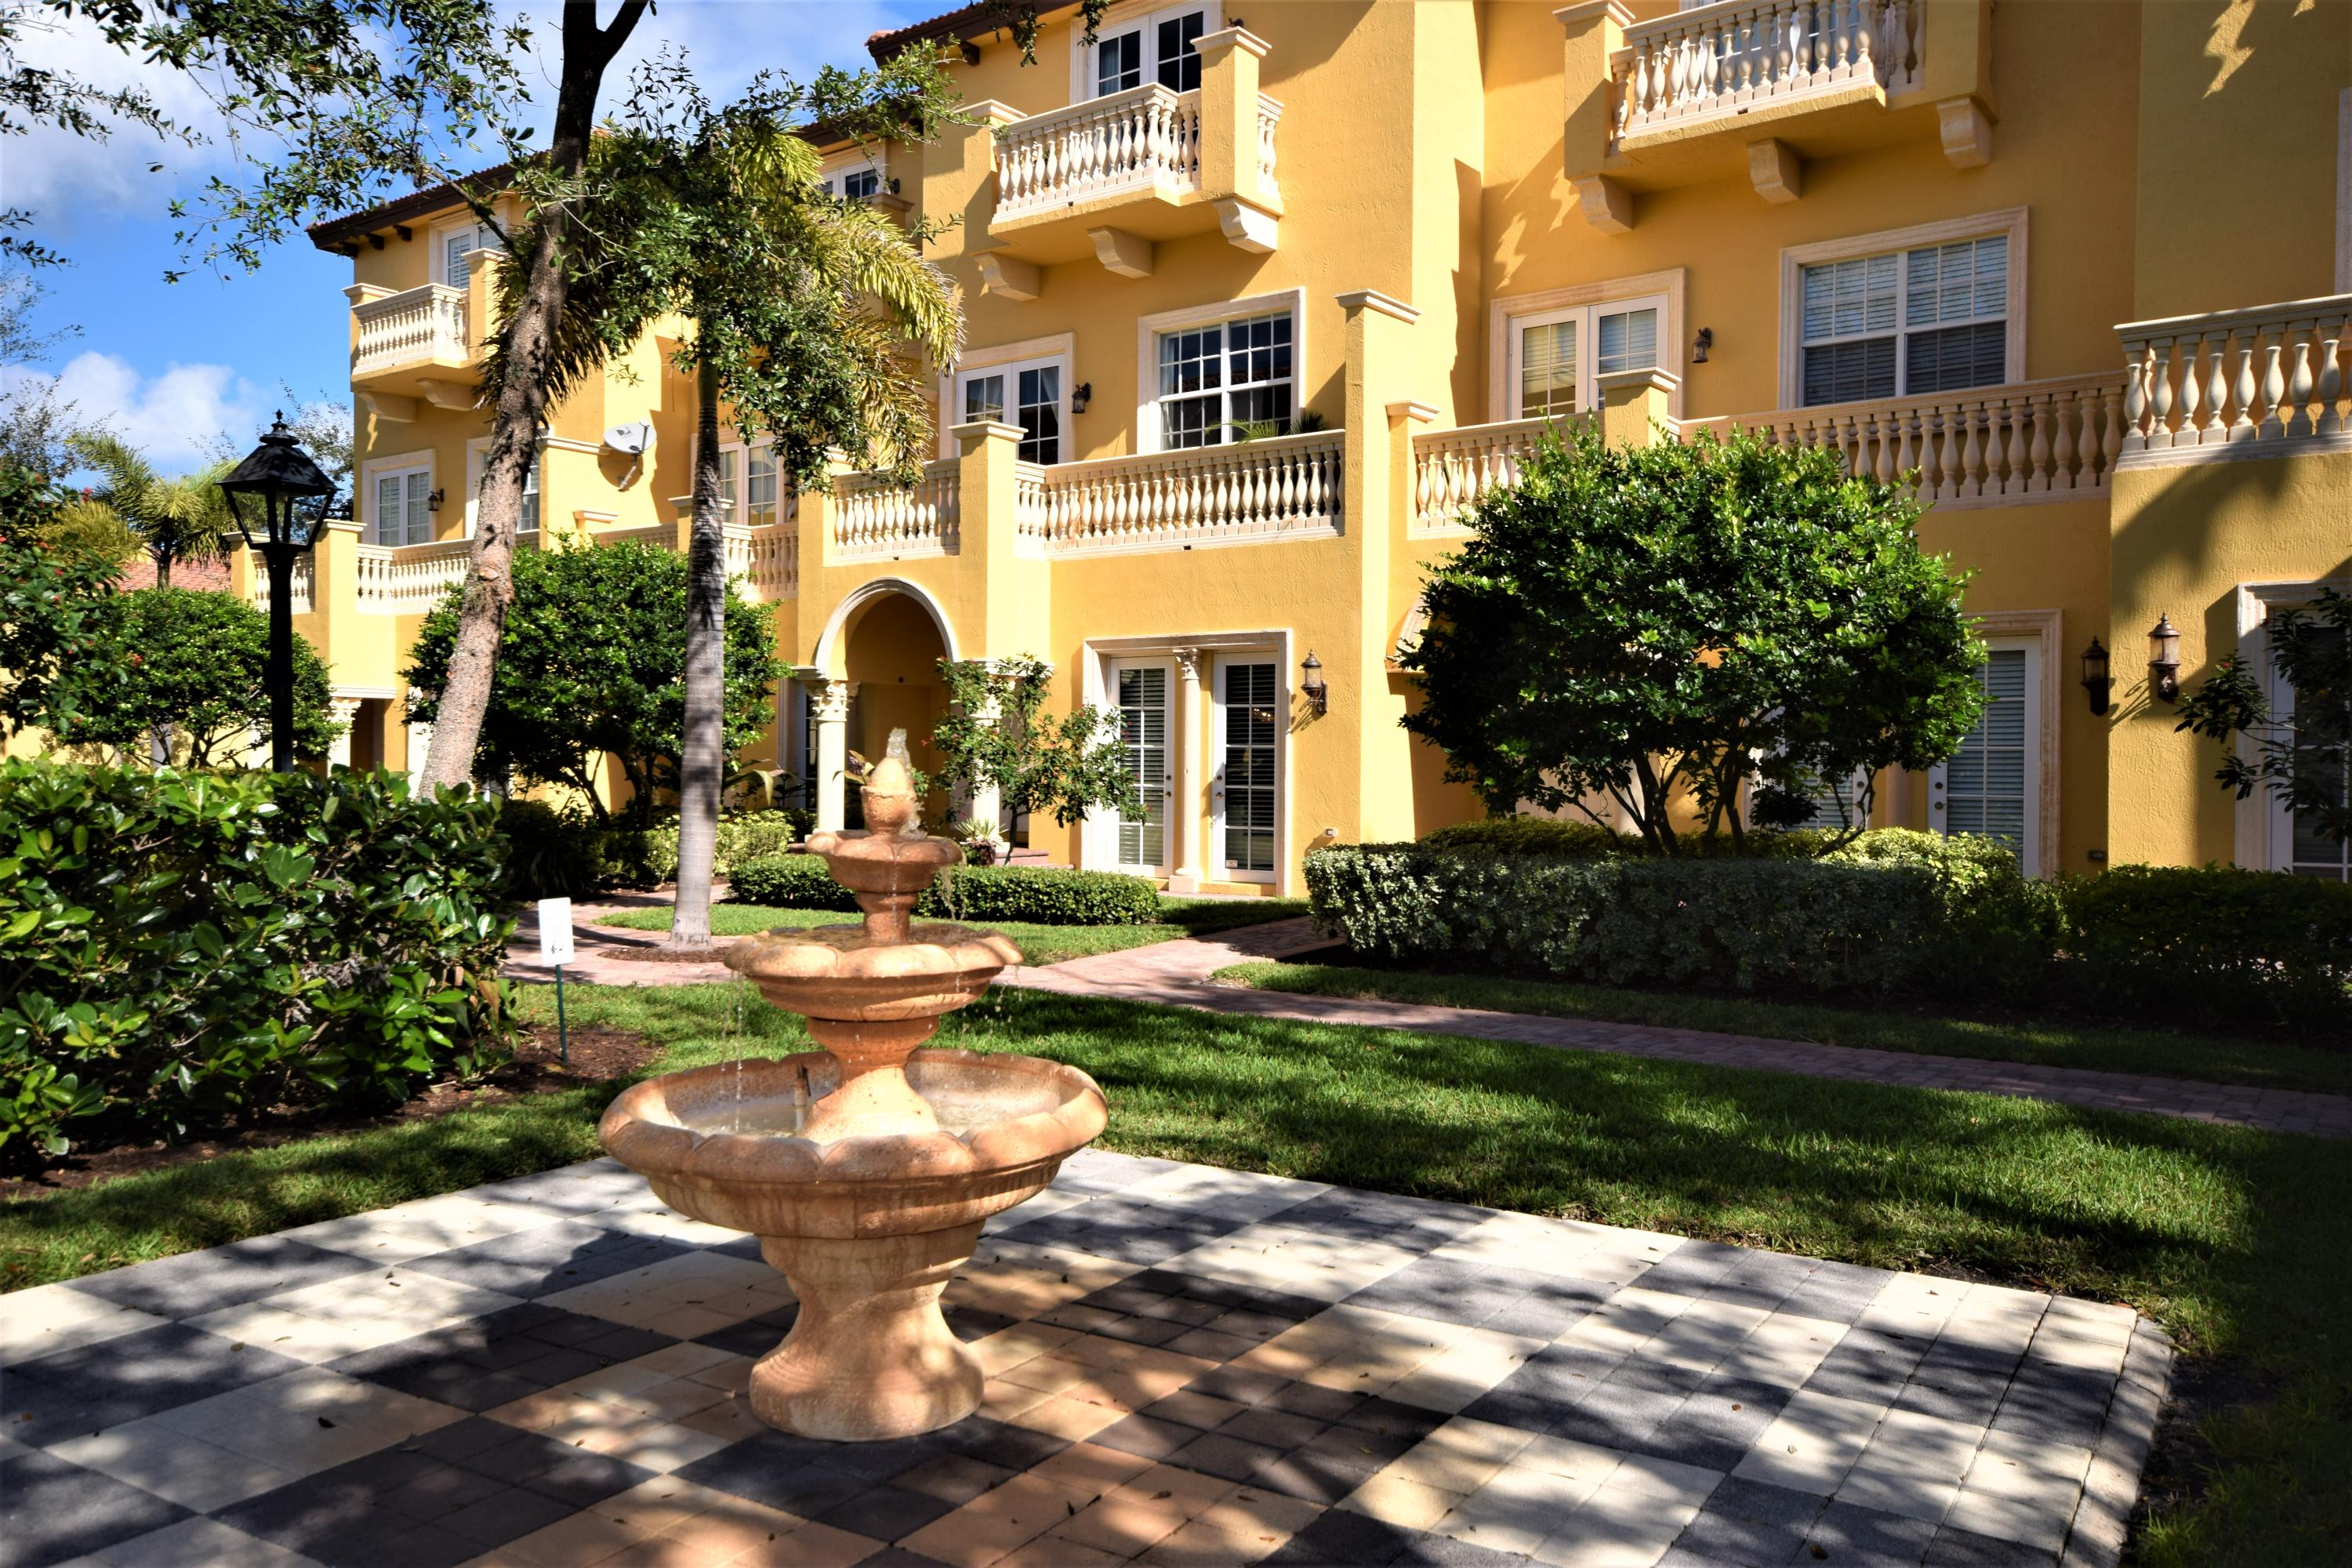 525 NE 69TH Circle Boca Raton, FL 33487